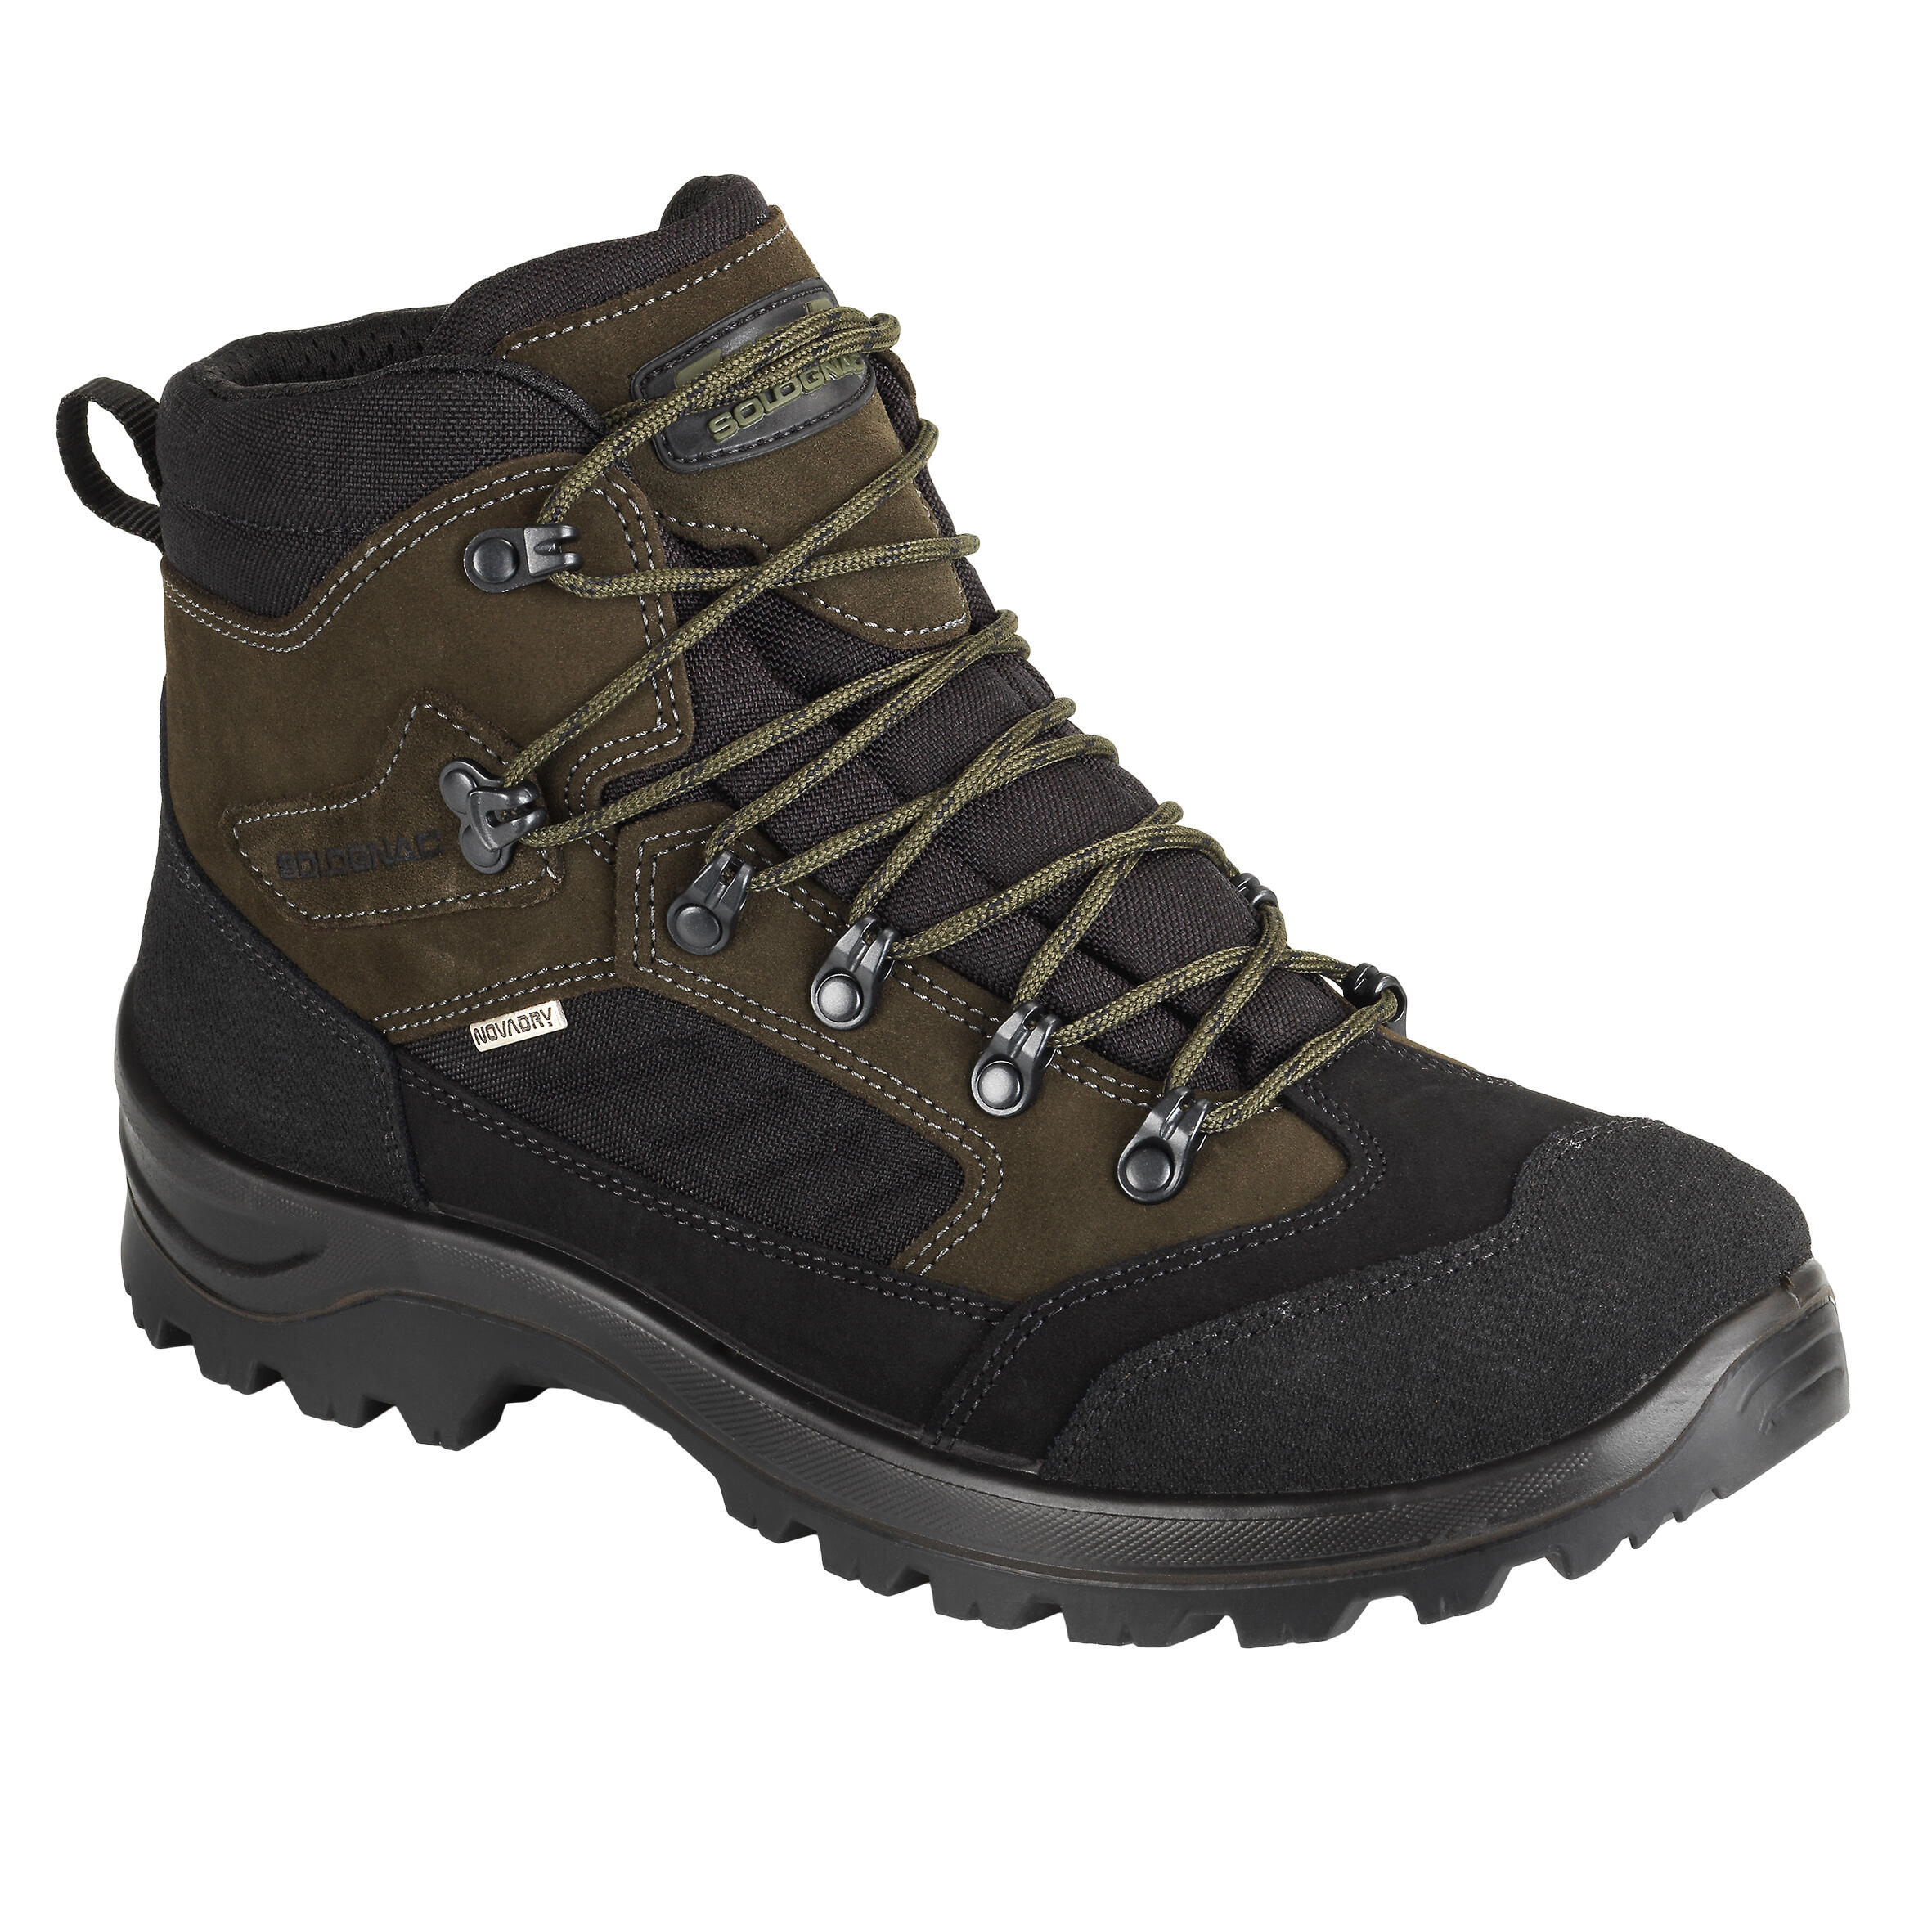 Crosshunt 300 Waterproof Hunting Boots Brown